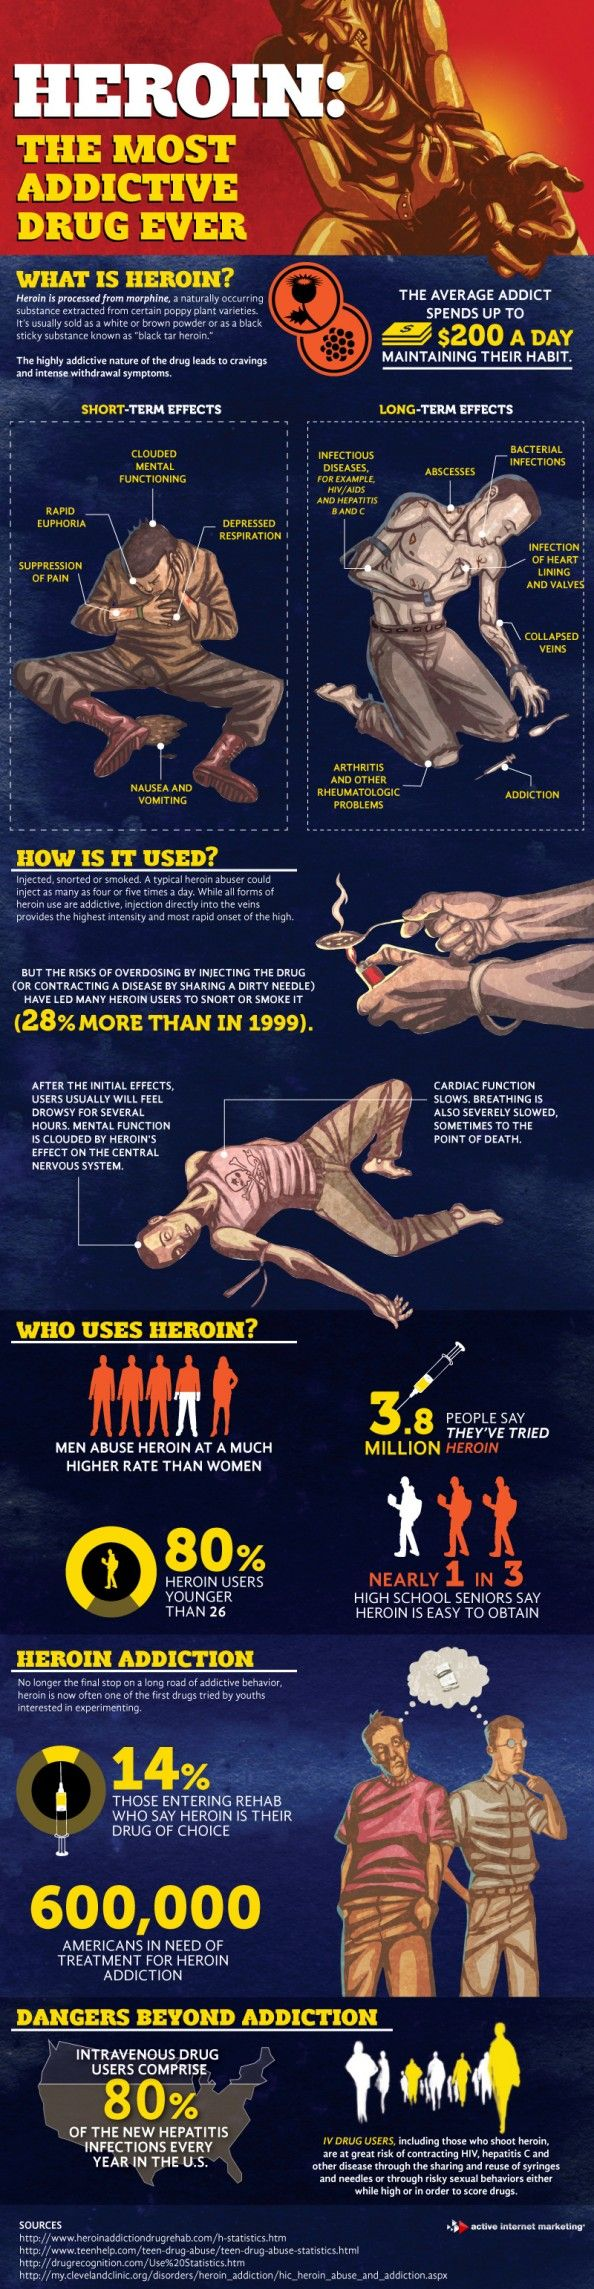 Heroin - The Most Addictive Drug Ever | Visual.ly